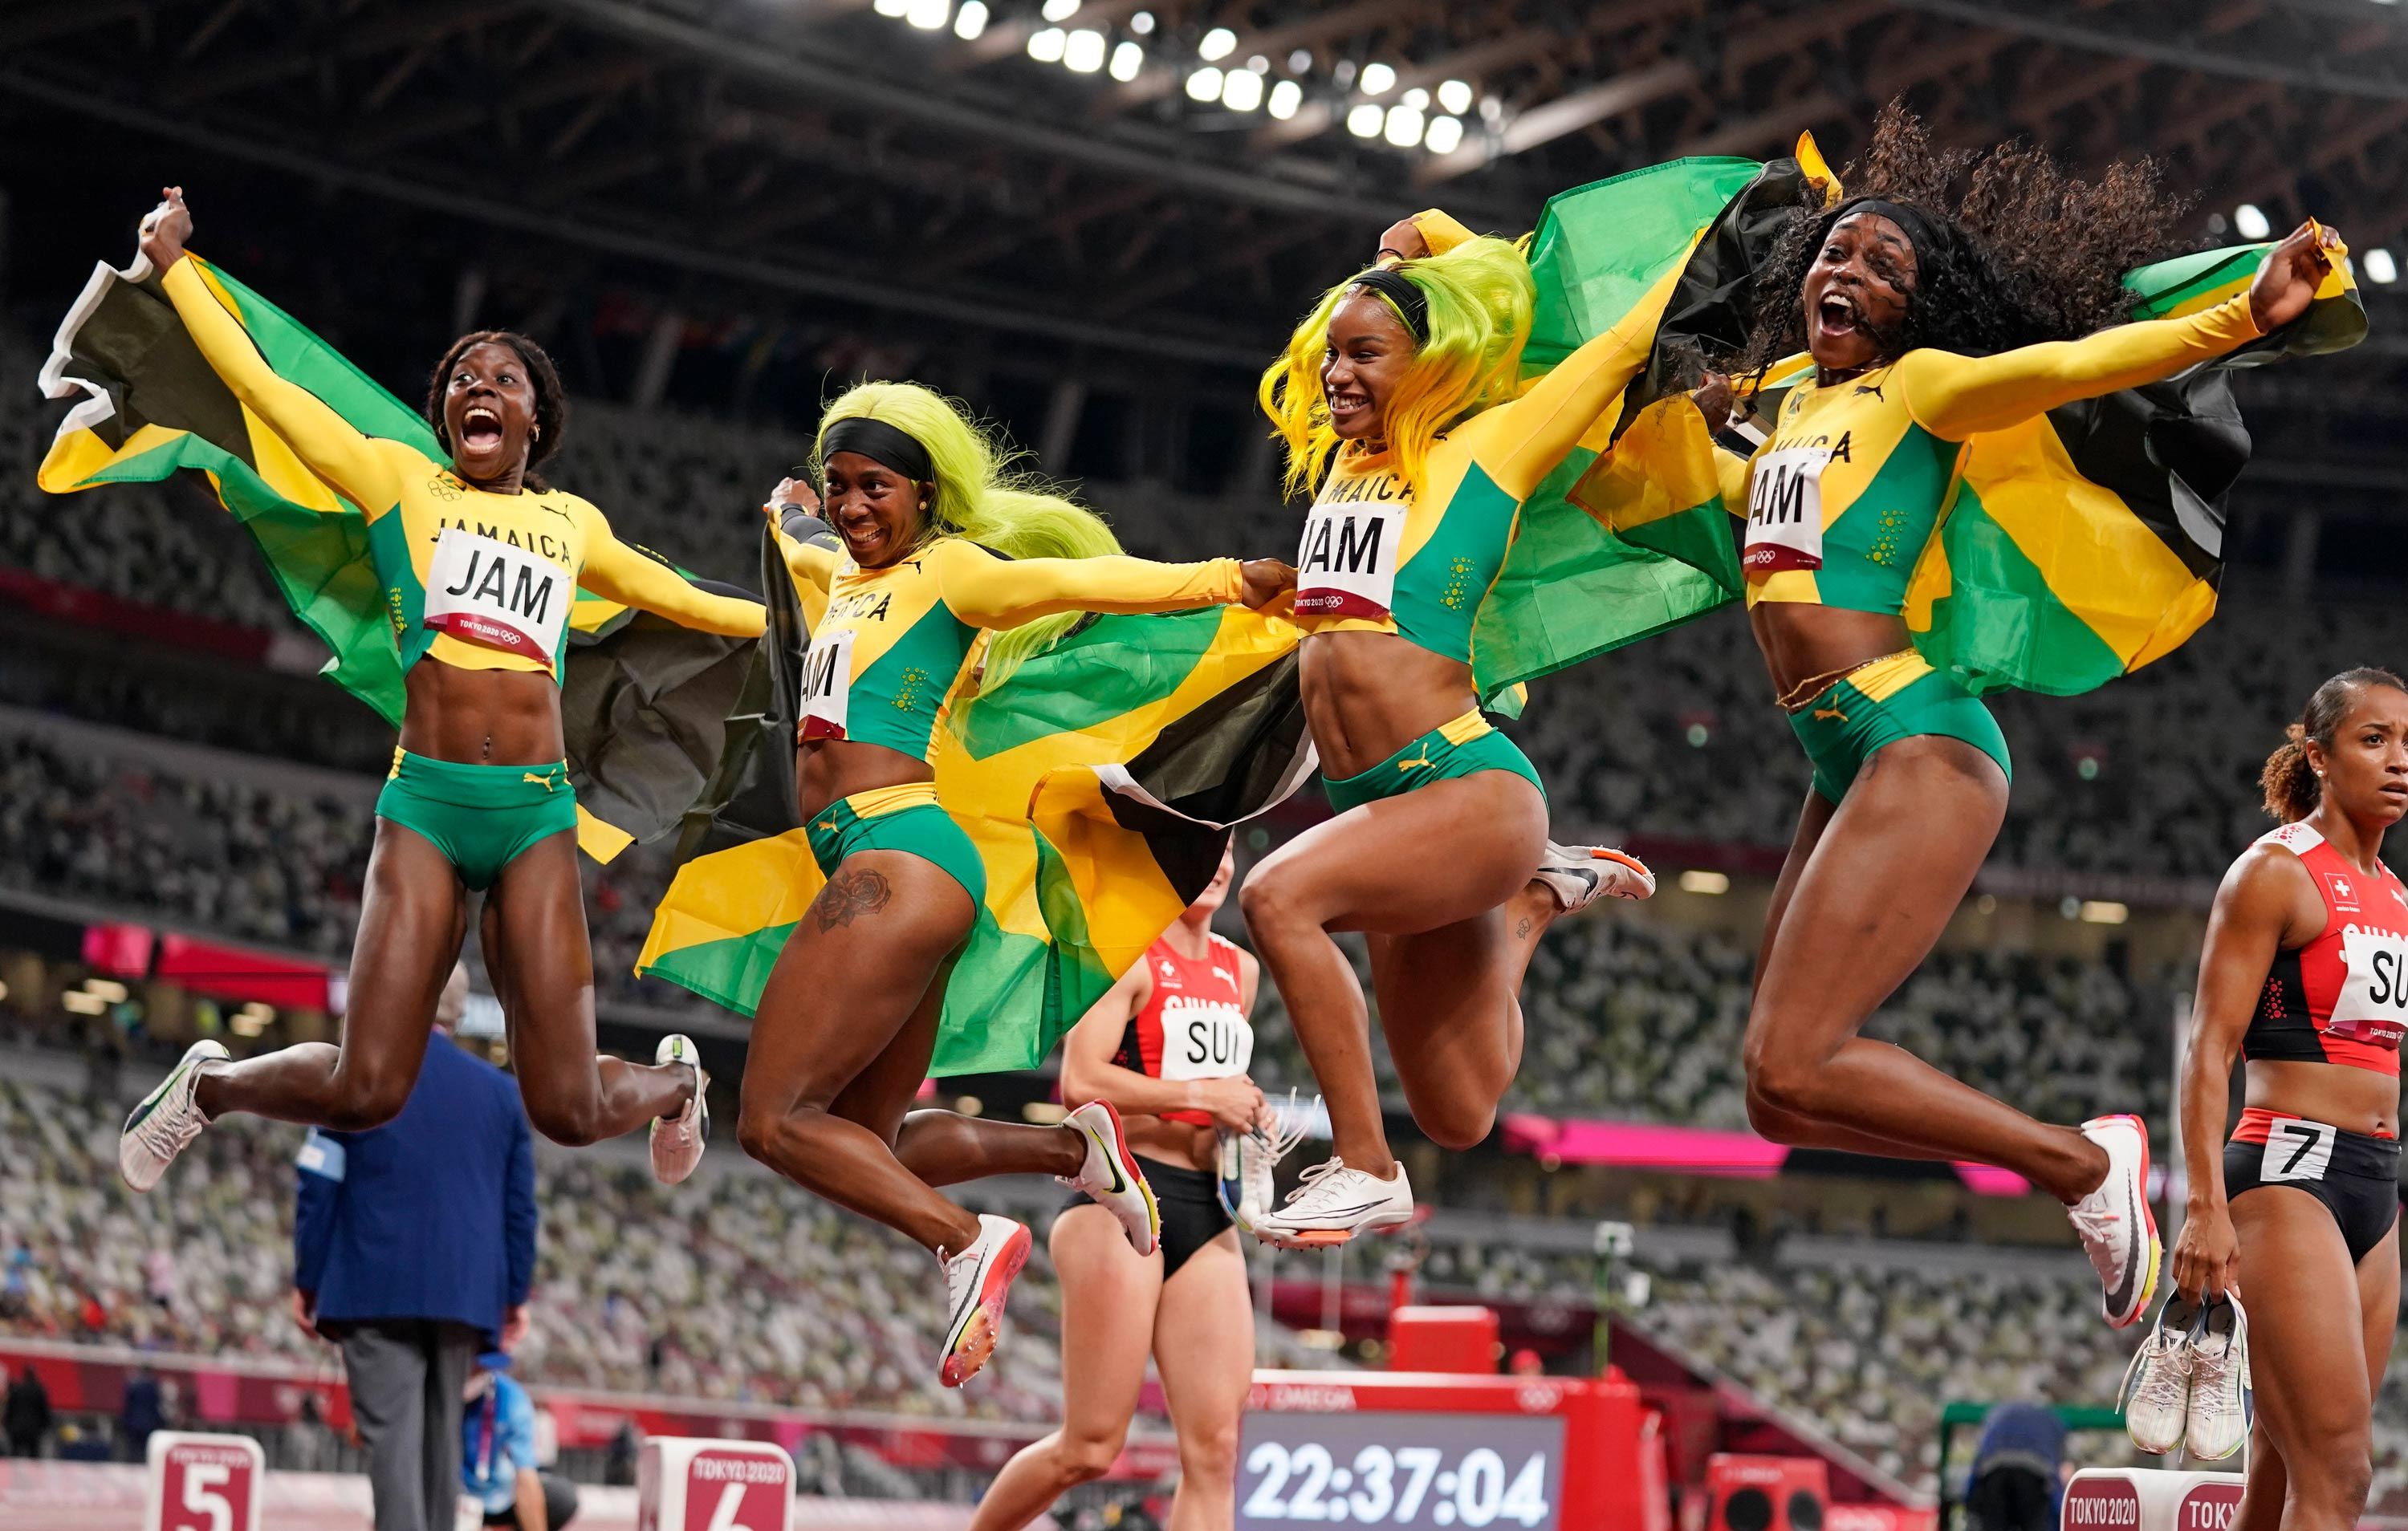 From left, Jamaica's Shericka Jackson, Shelly-Ann Fraser-Pryce, Briana Williams and Elaine Thompson-Herah celebrate after winning the gold medal in the 4 x 100-meter relay on August 6.